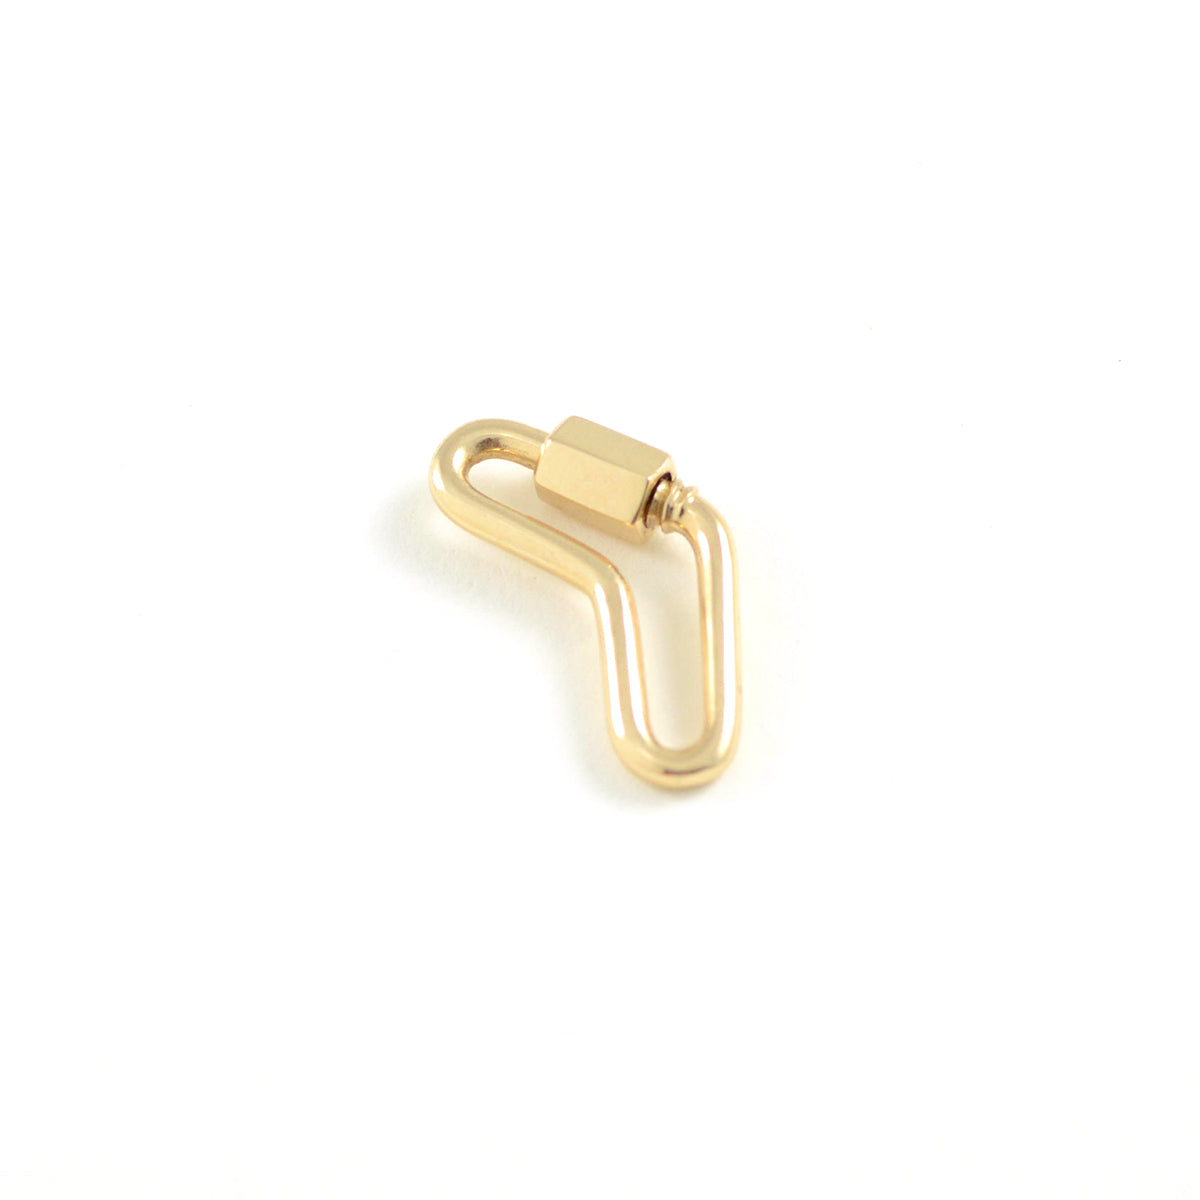 Marla Aaron boomerang lock in yellow gold